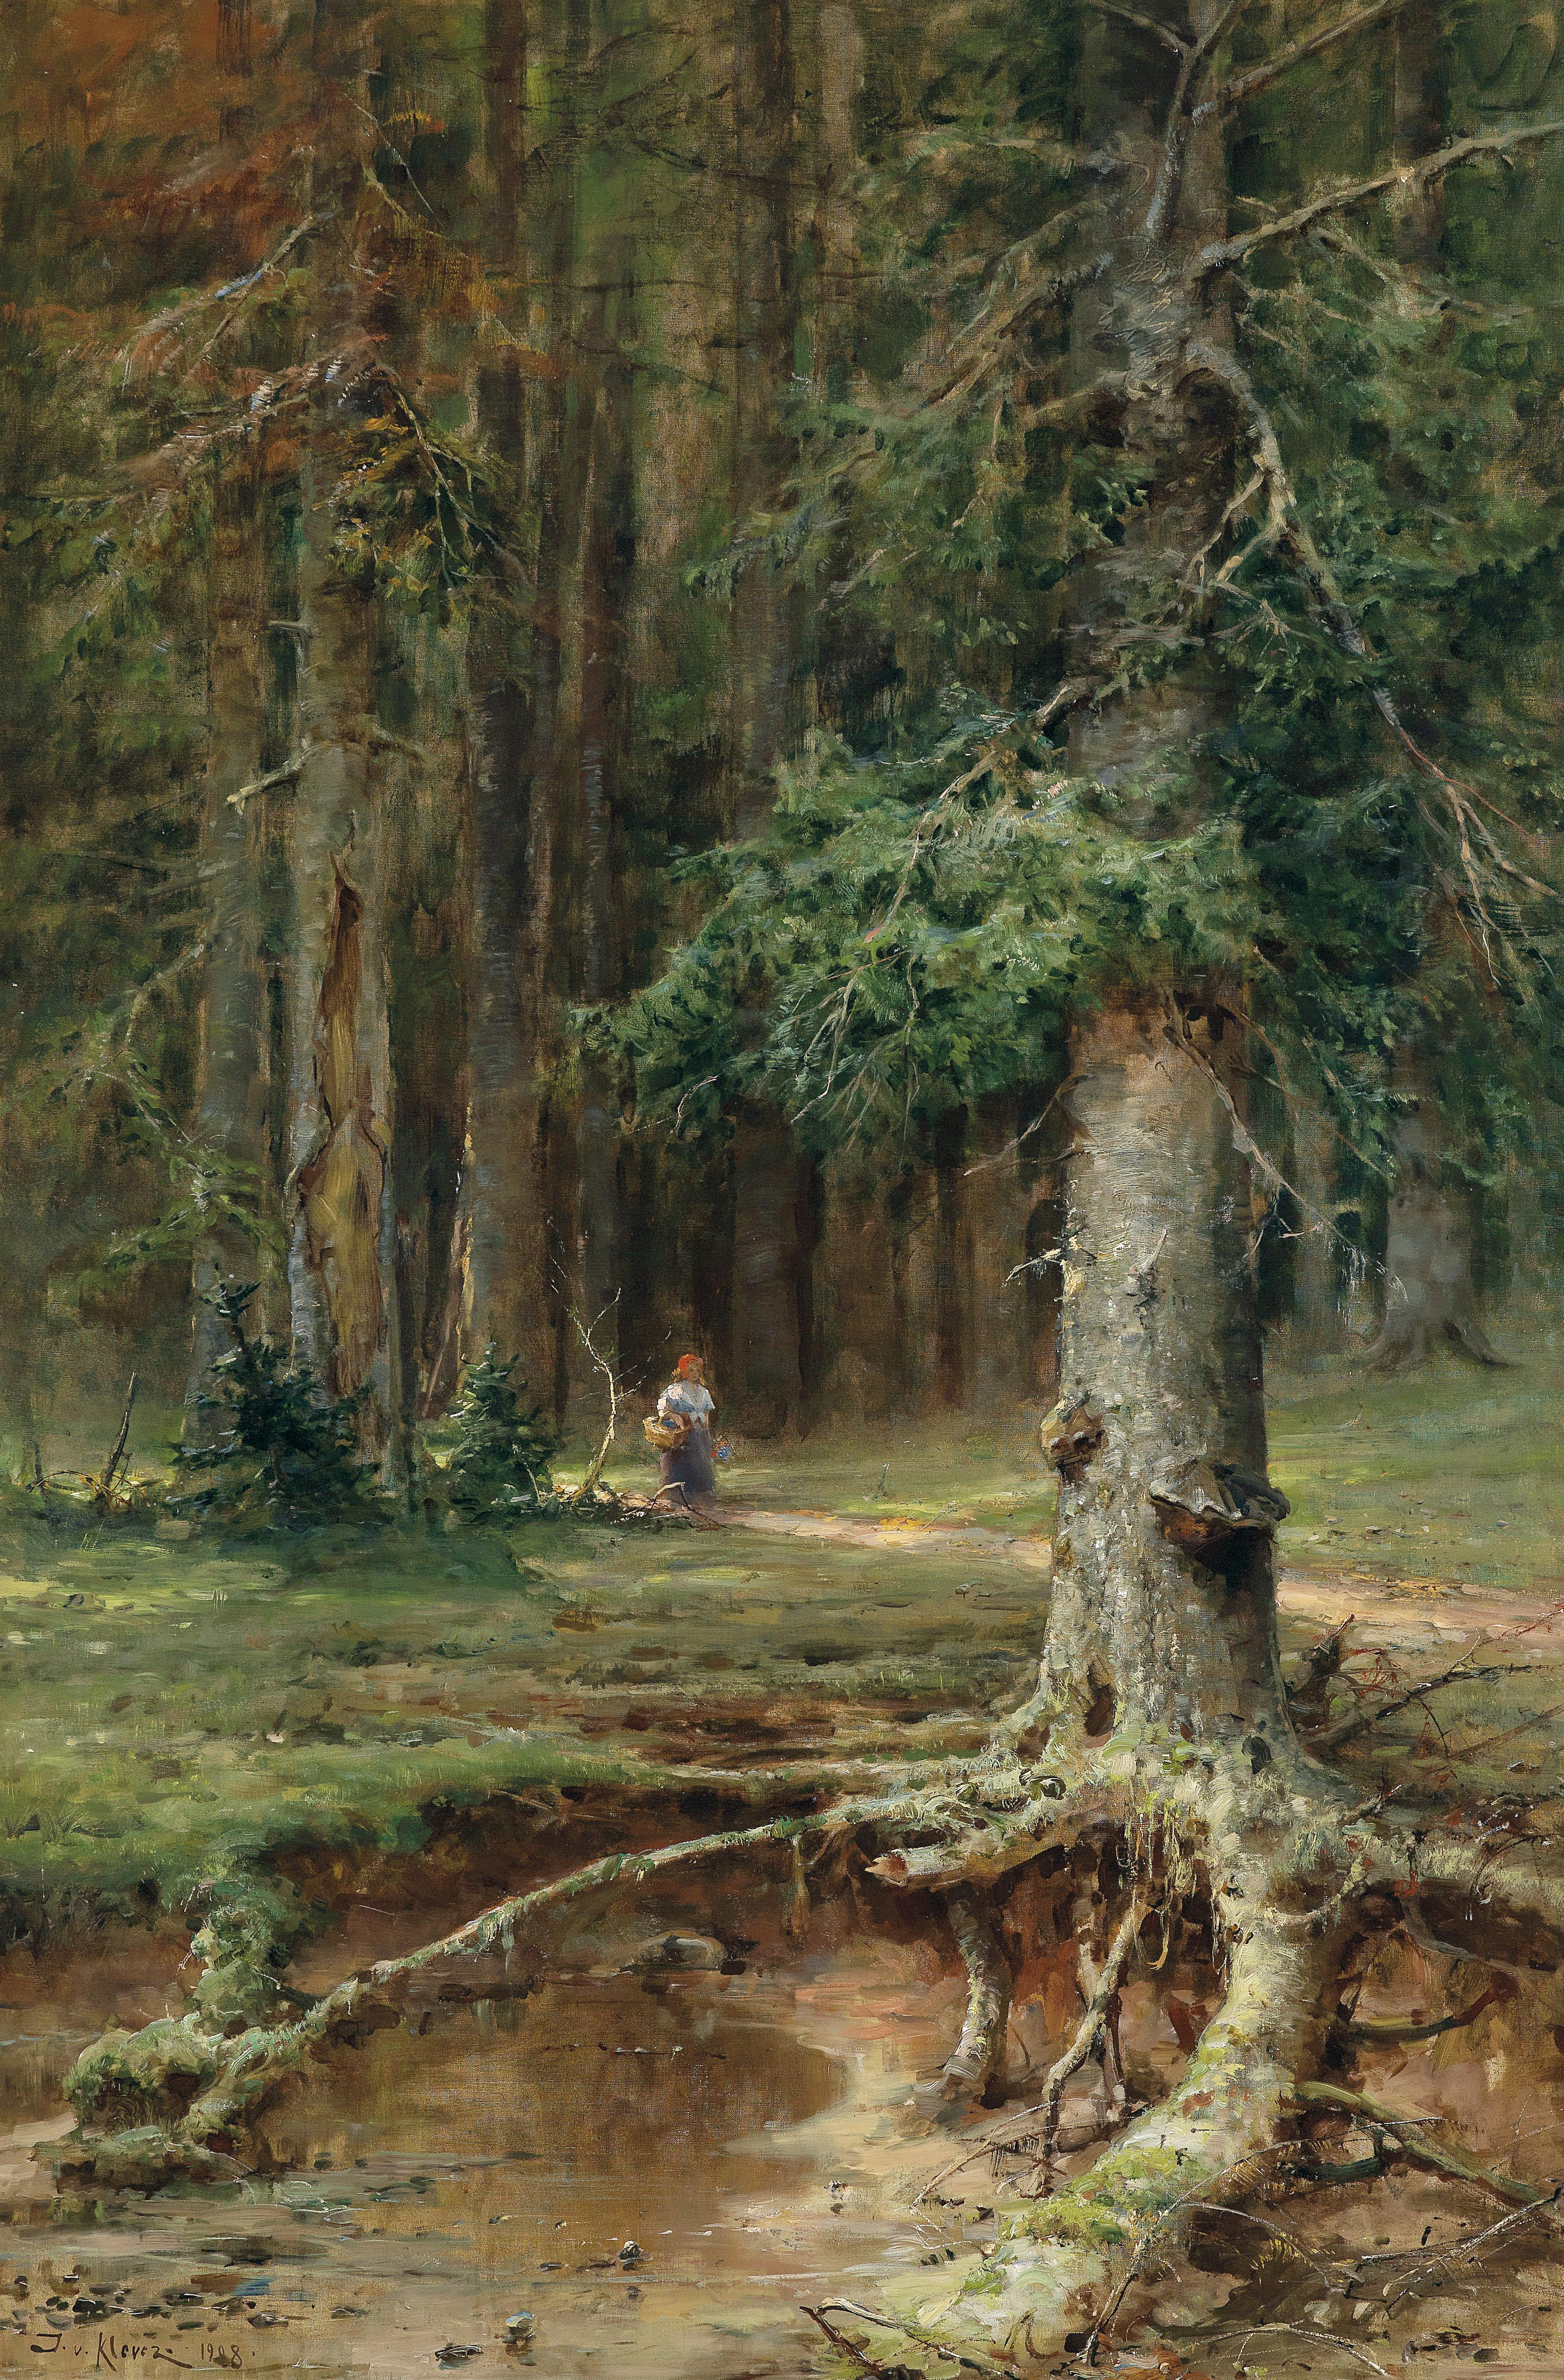 Painting Water Alone Boy On Shore Of Wooded Area